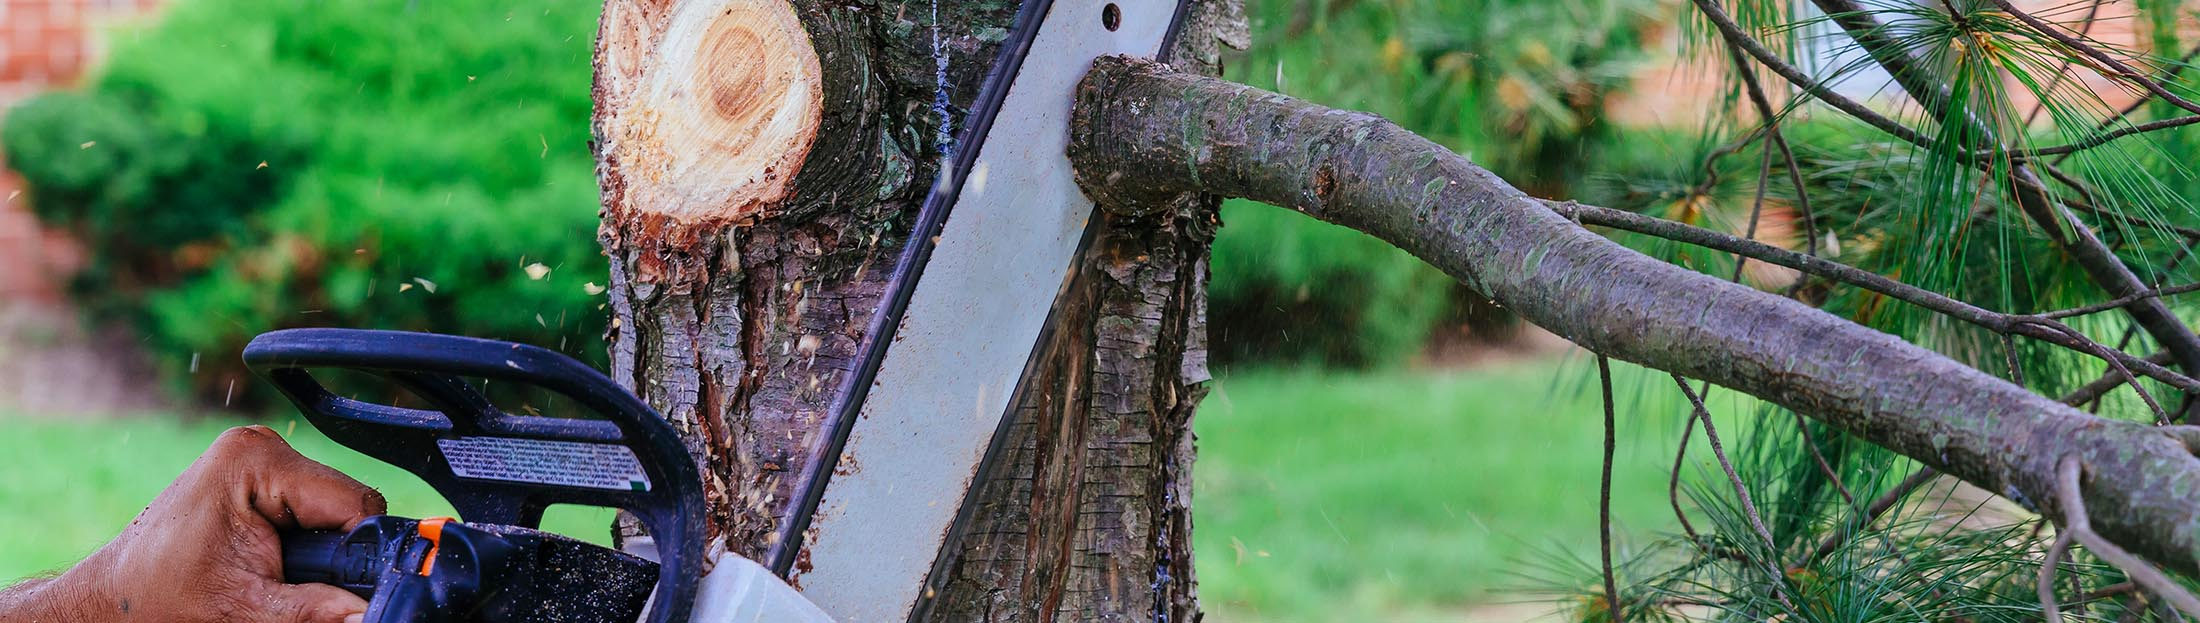 Earthworks Gardens offer tree removal services to get rid of your trees